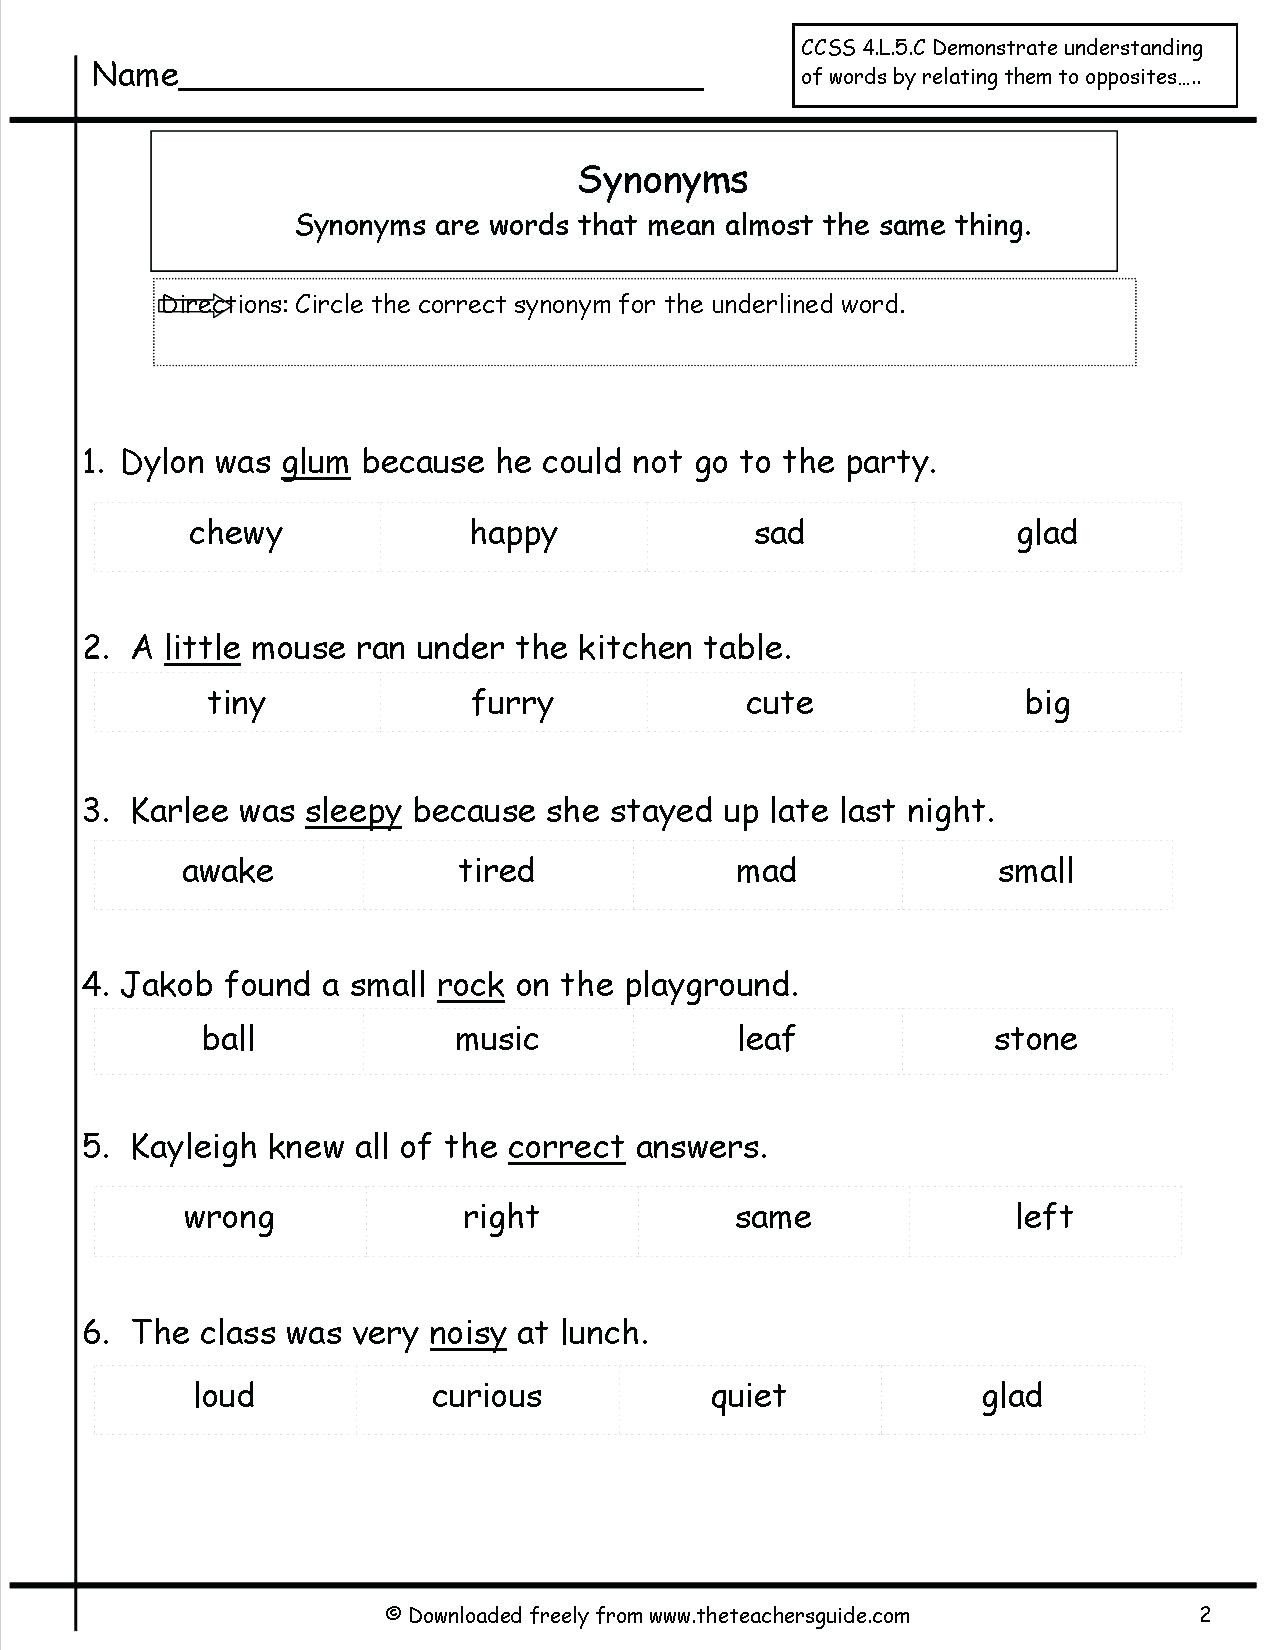 synonyms worksheet pdf life skills worksheets synonyms worksheet free printable l on free synonyms antonyms worksheets synonyms worksheet 5th grade pdf